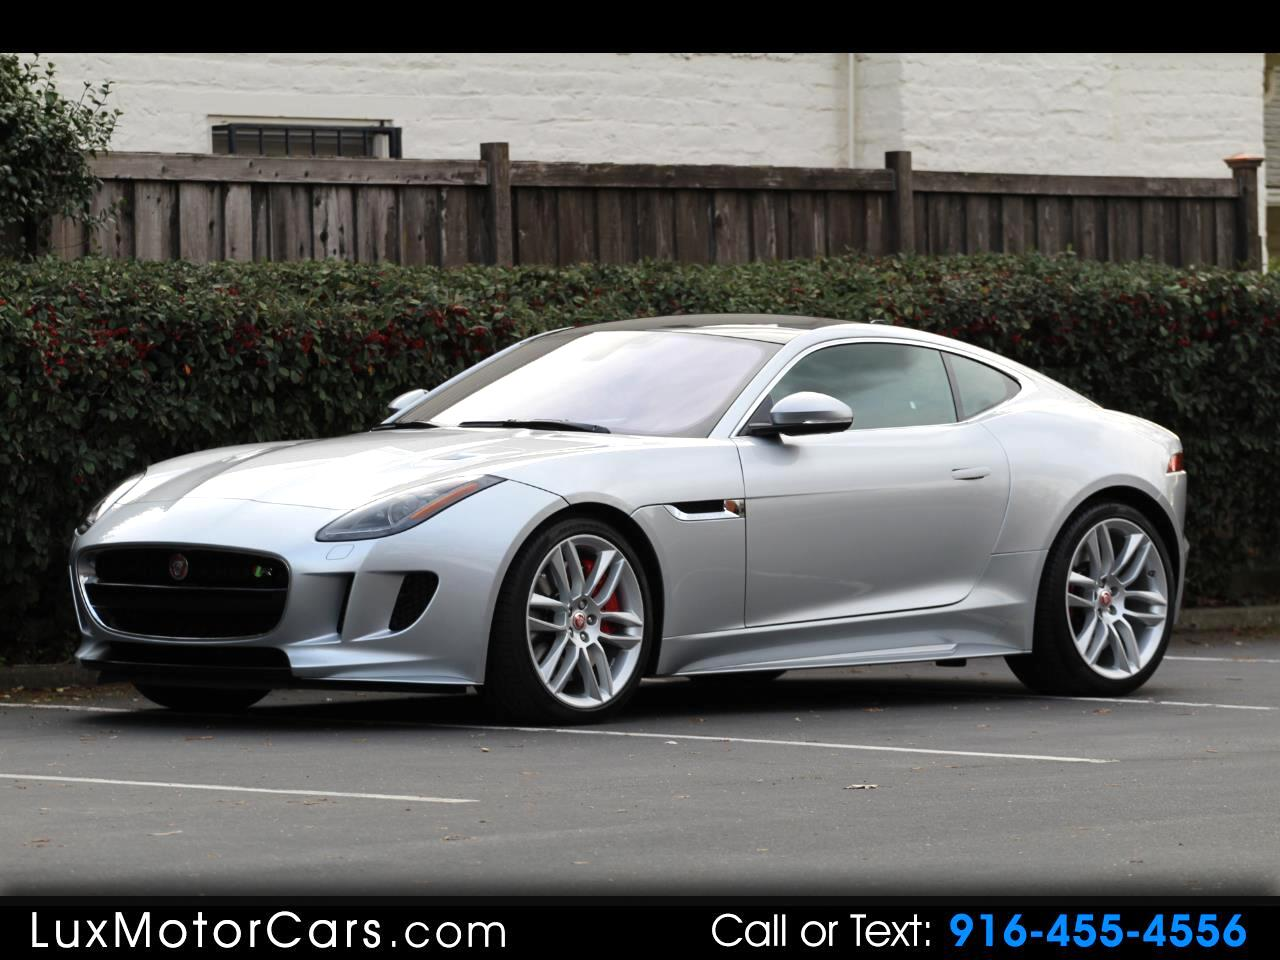 2017 Jaguar F-Type R Coupe AWD